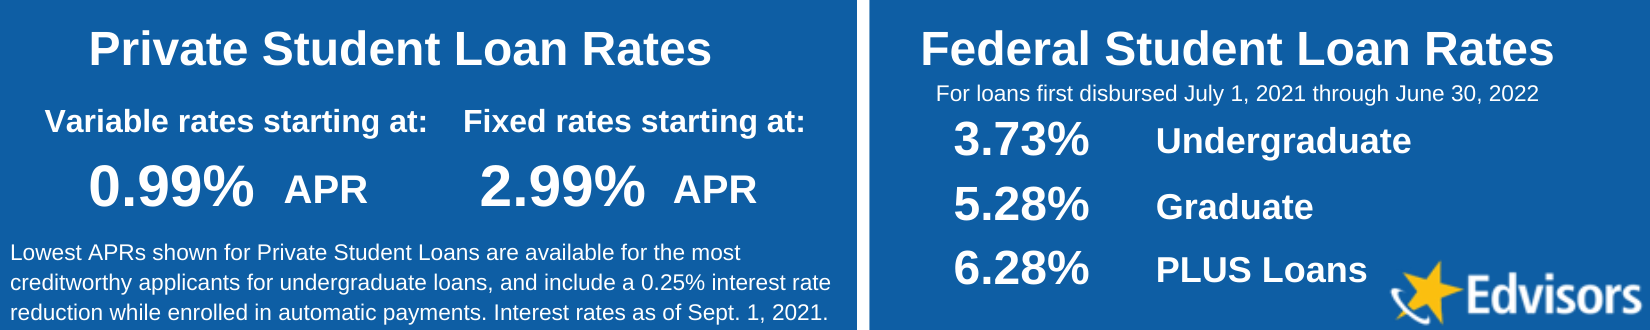 private student loan interest rates June 2019